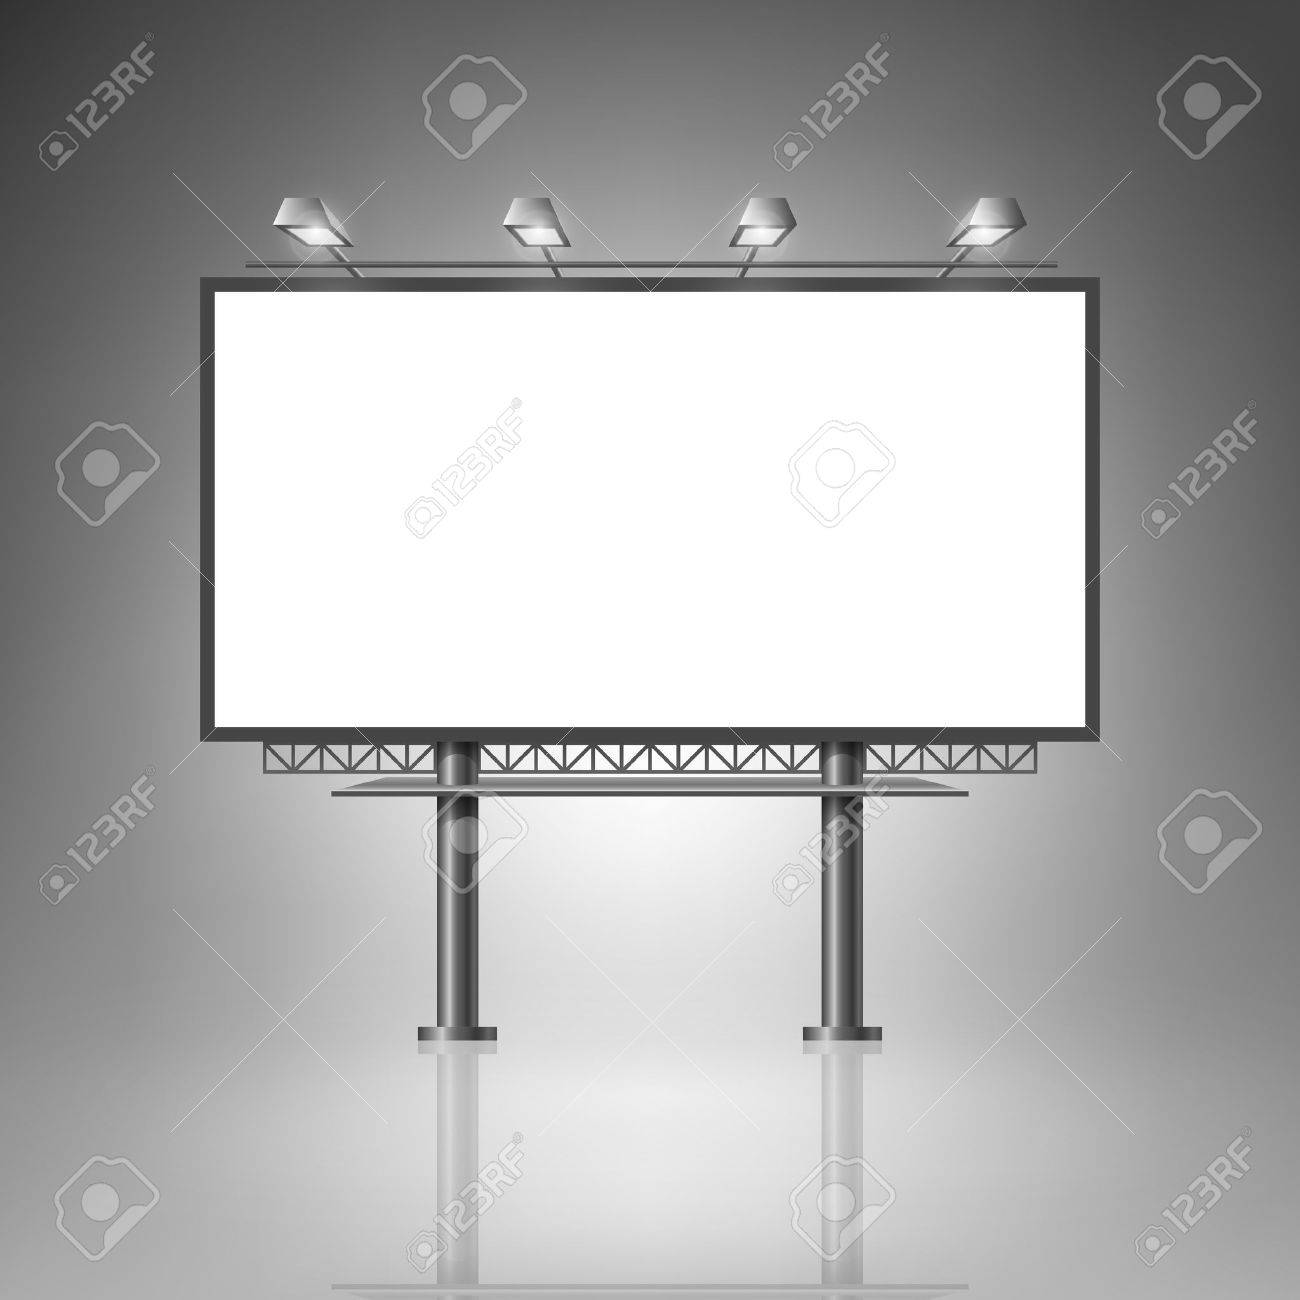 Template For Advertising And Corporate Identity Outdoor Billboard